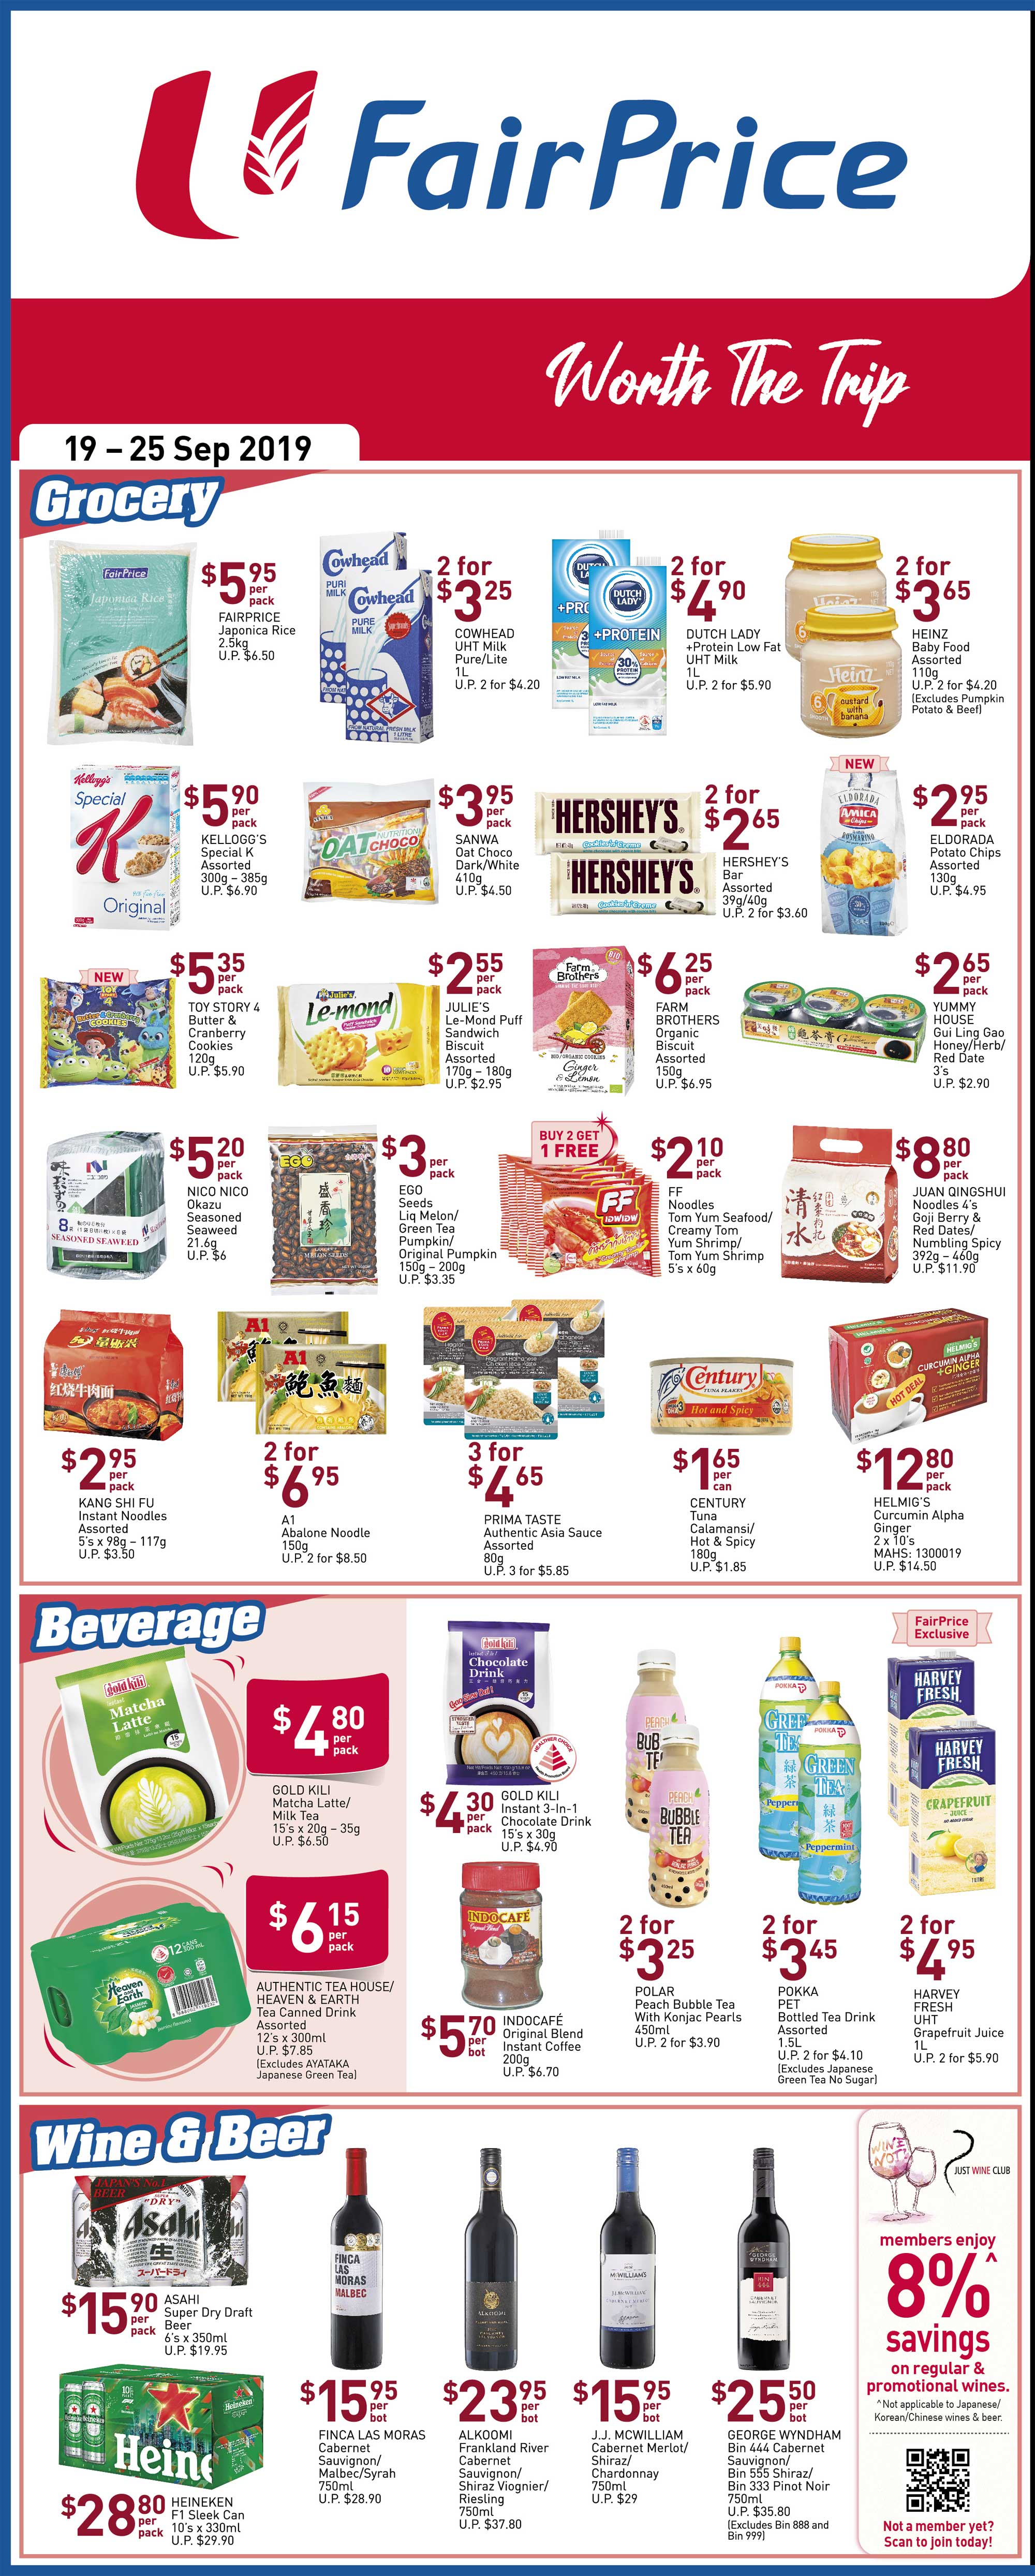 NTUC FairPrice Singapore Your Weekly Saver Promotion 19-25 Sep 2019 | Why Not Deals 1 & Promotions